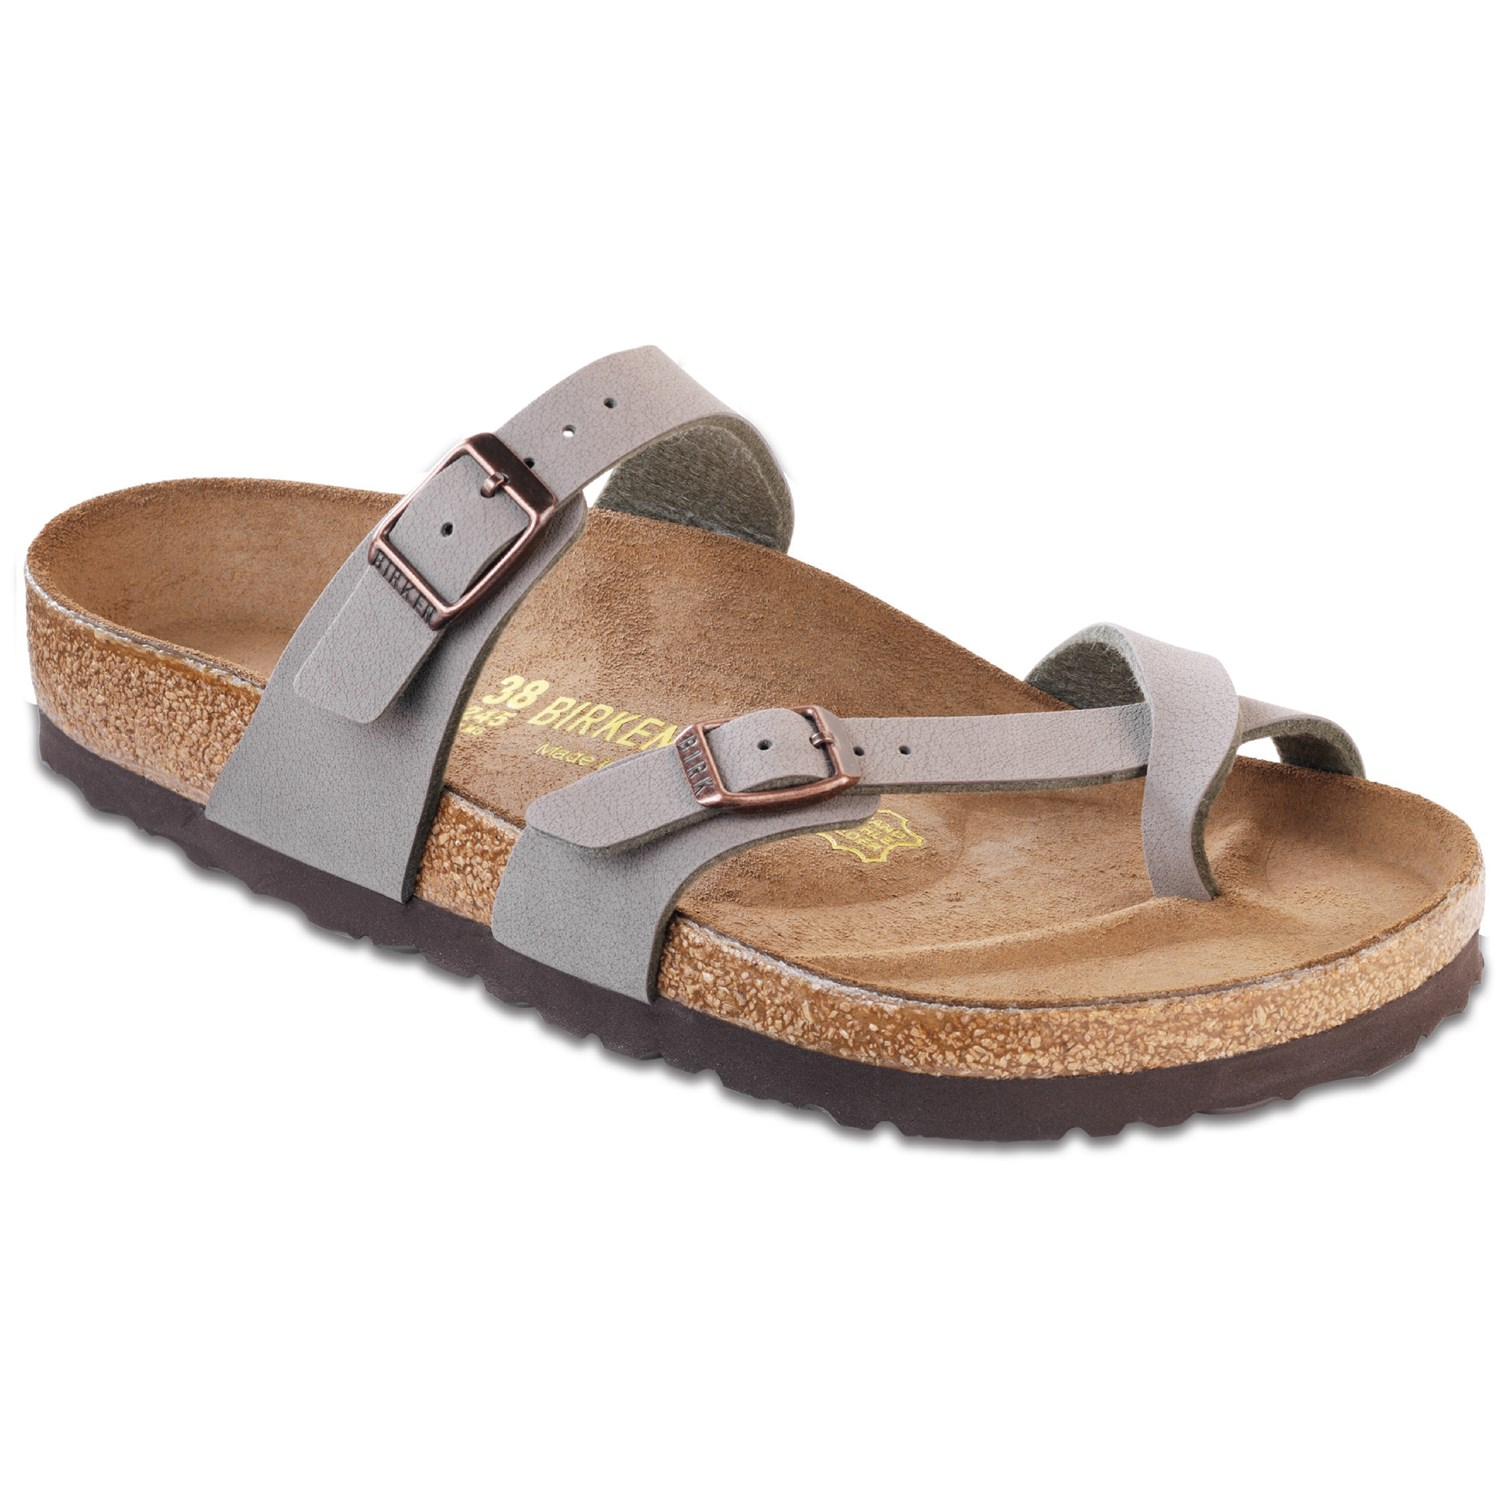 Unique Birkenstock Womens Gizeh By Papillio Sandals  Shoes Trend Blog